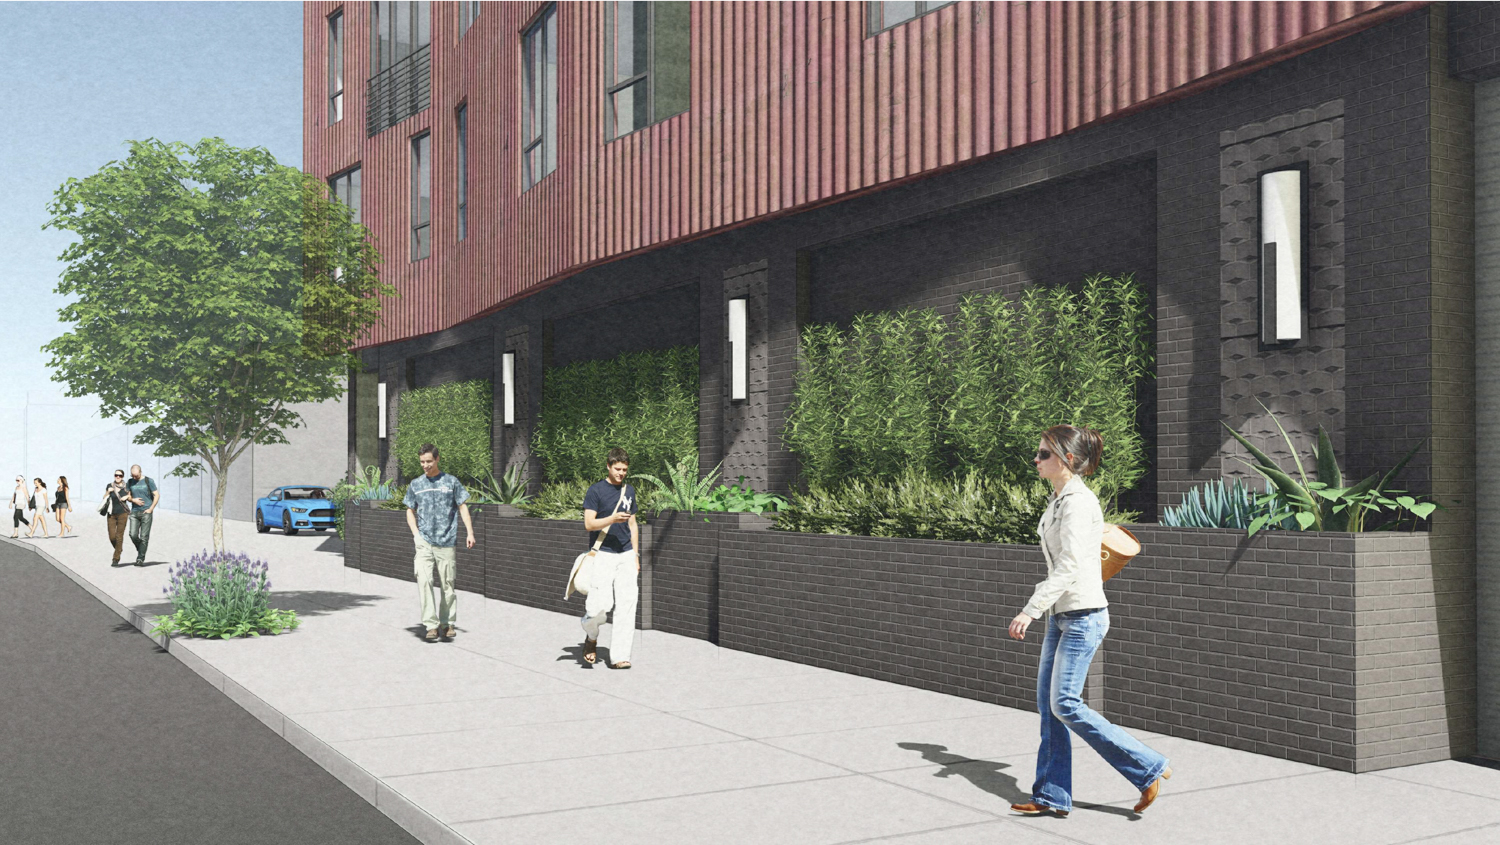 2600 Telegraph Avenue active sidewalk, rendering by BAR Architects